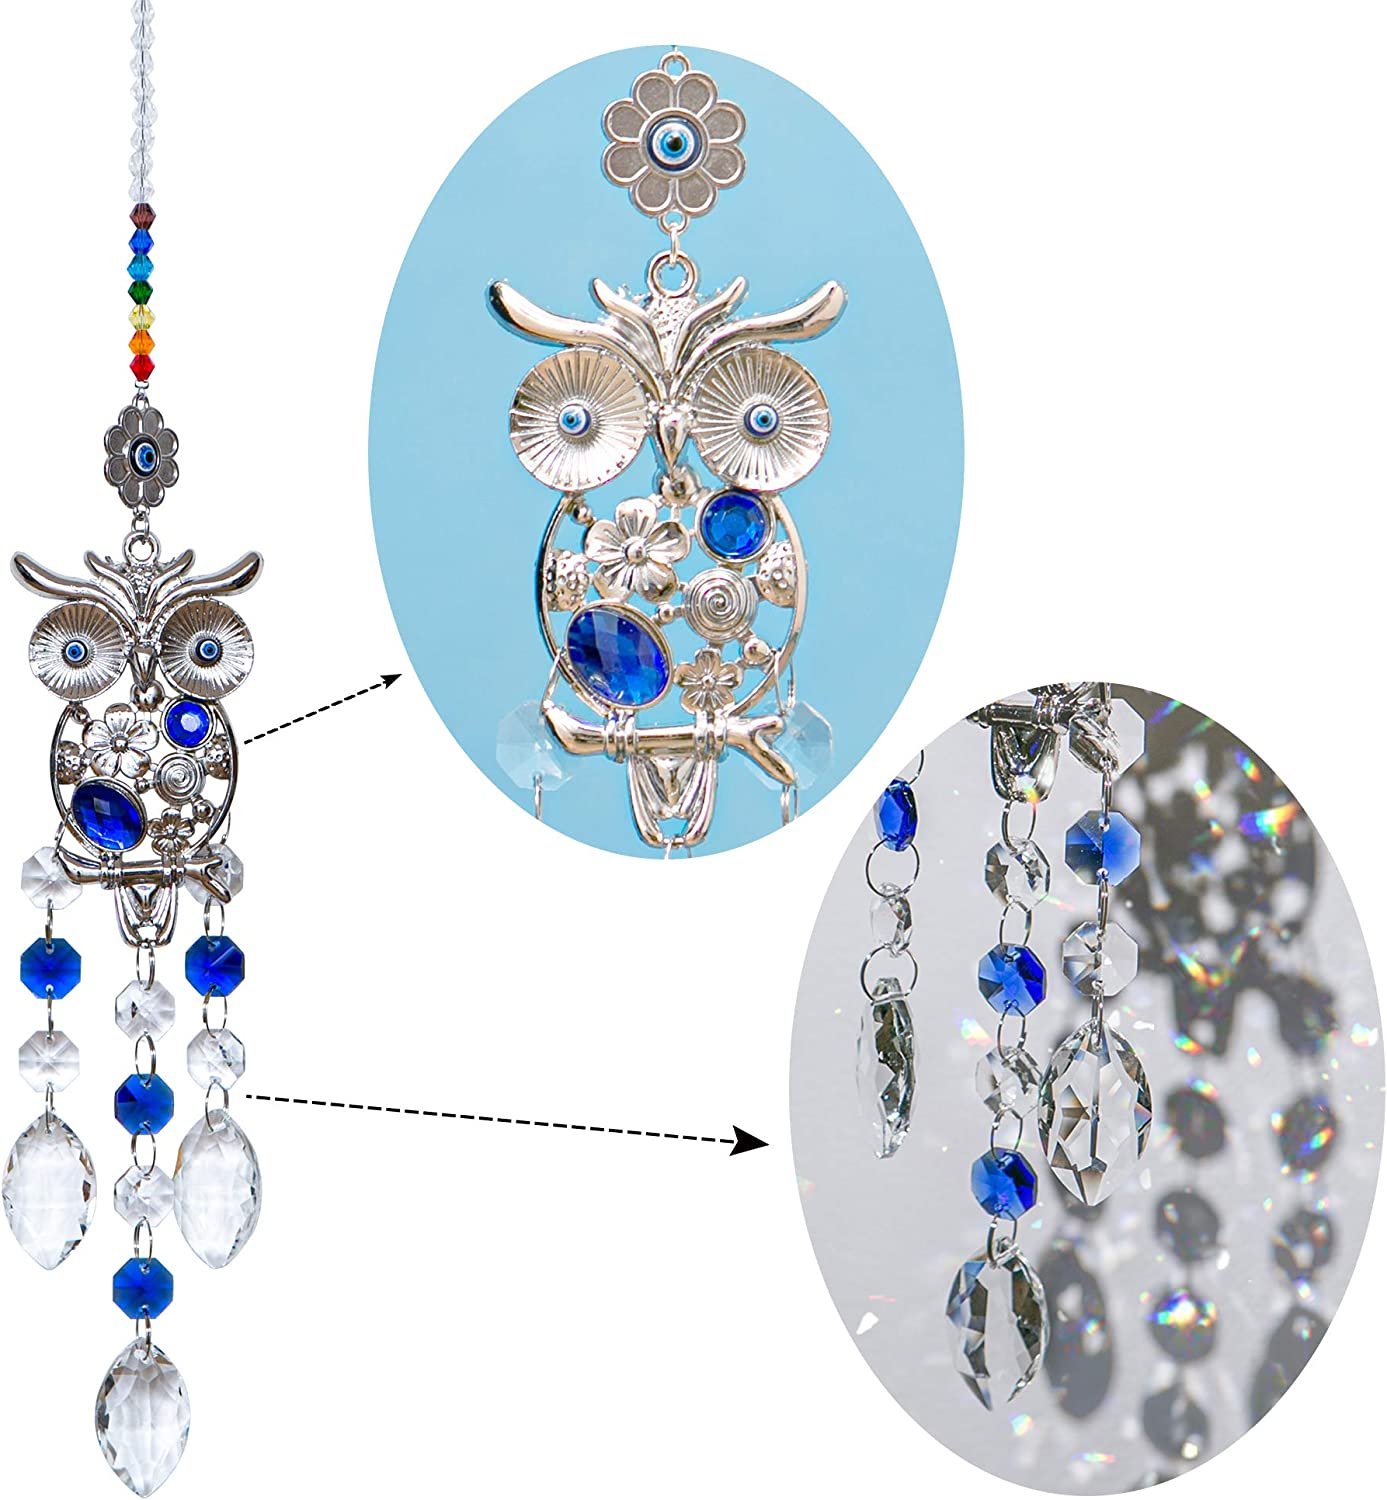 WEISIPU Crystal Prism Suncatcher - Fengshui Glass Prism, Rainbow Maker with Owl for Home Decor